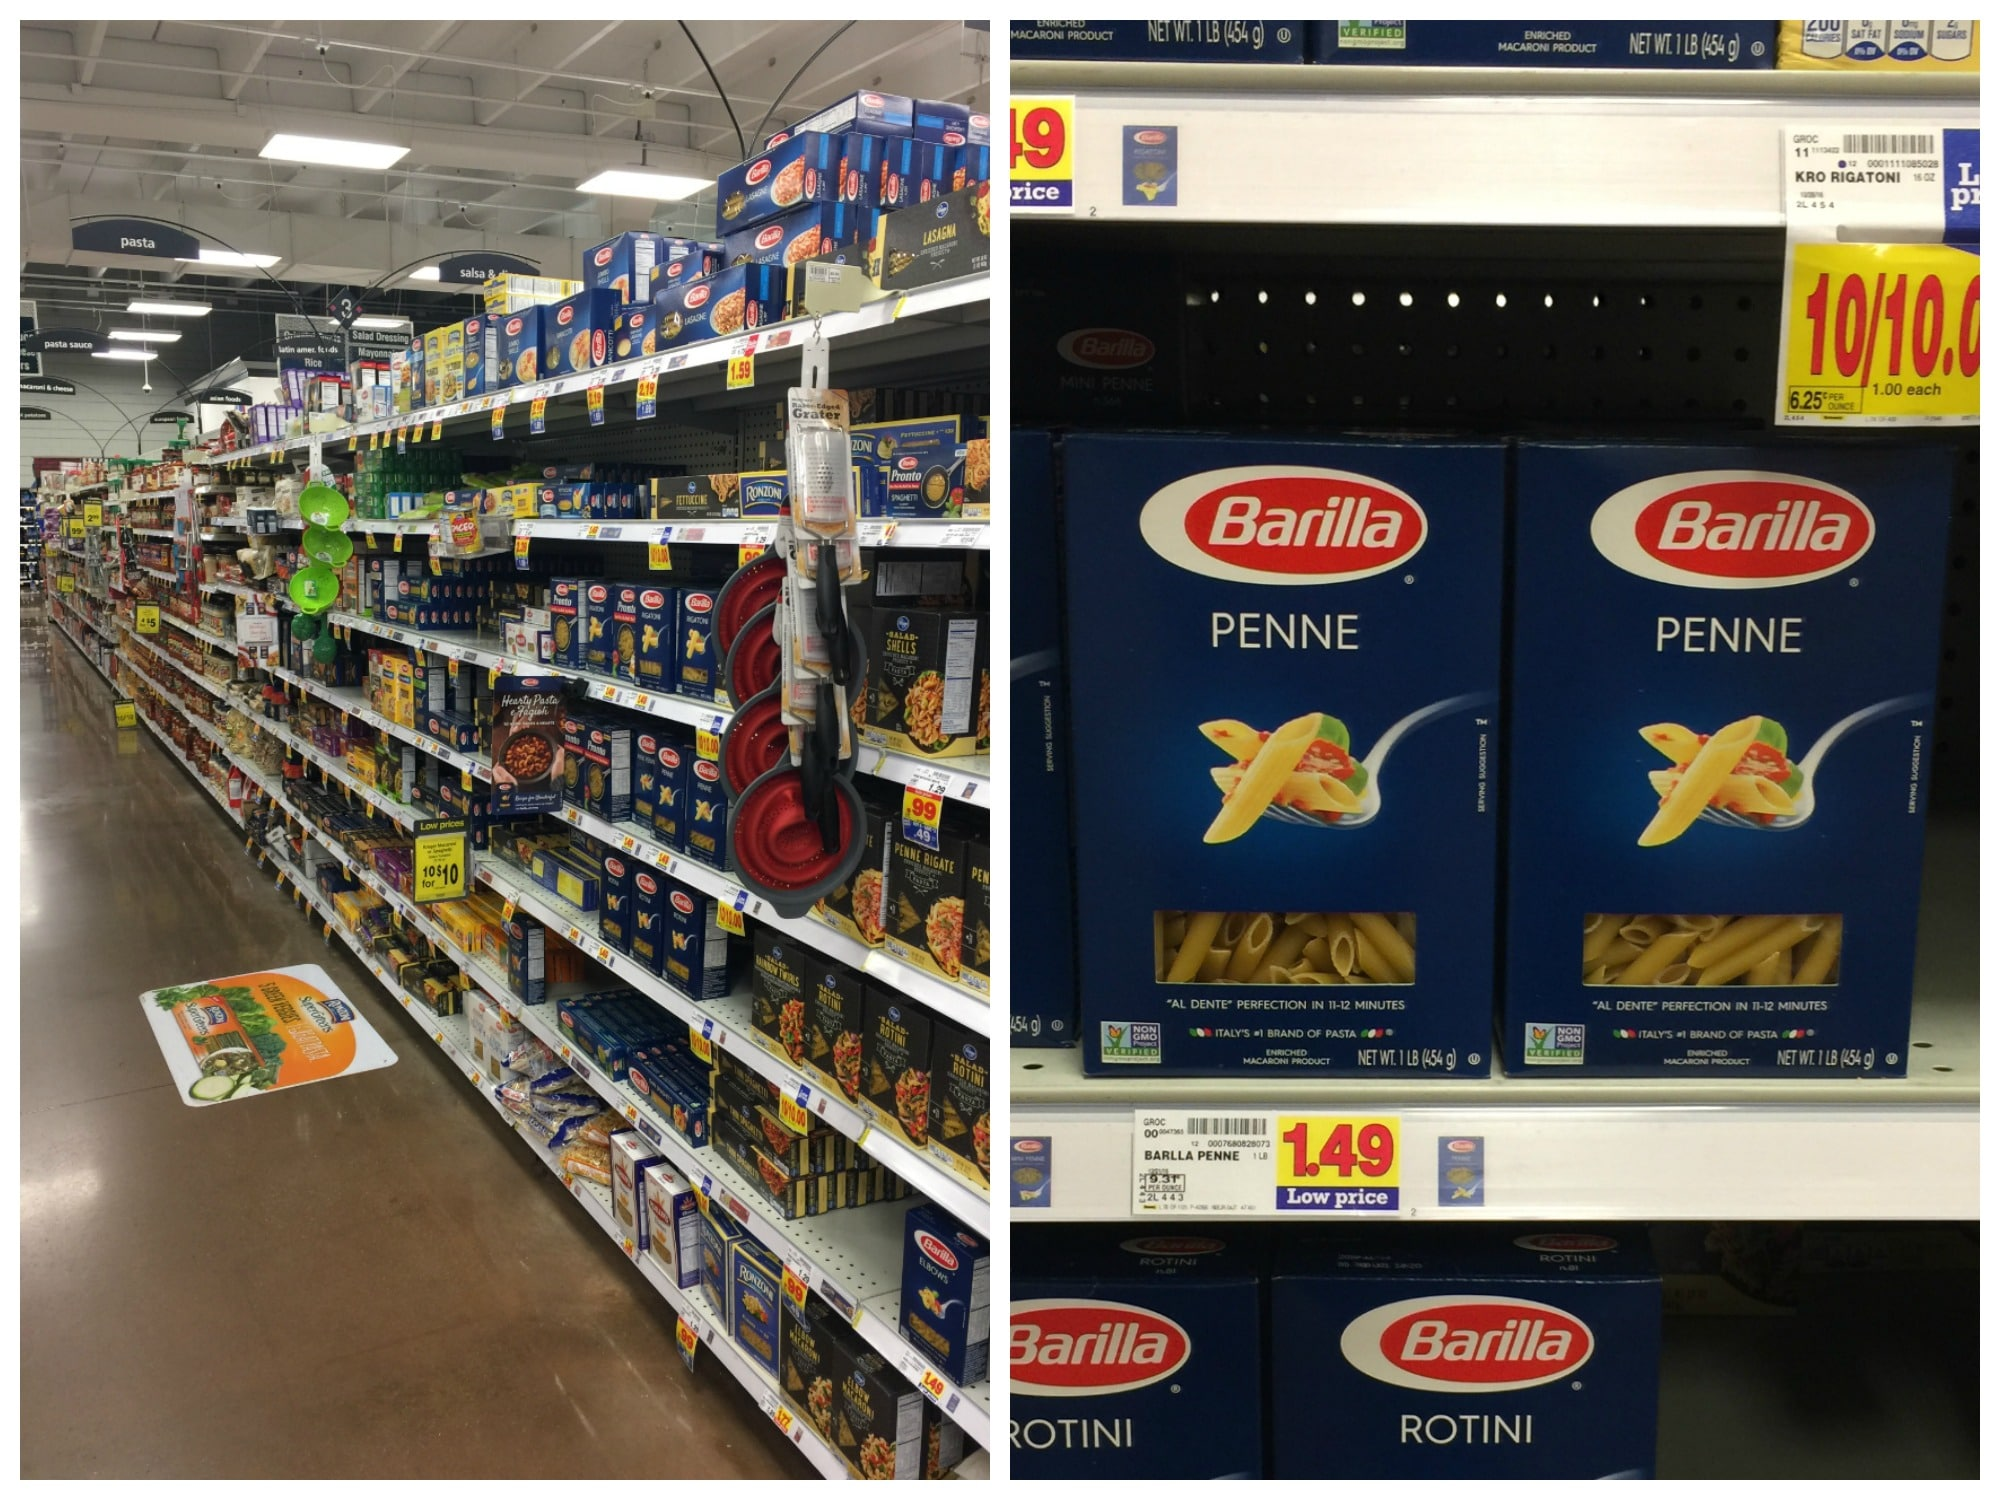 Supermarket aisle and Barilla Penne pasta on sale